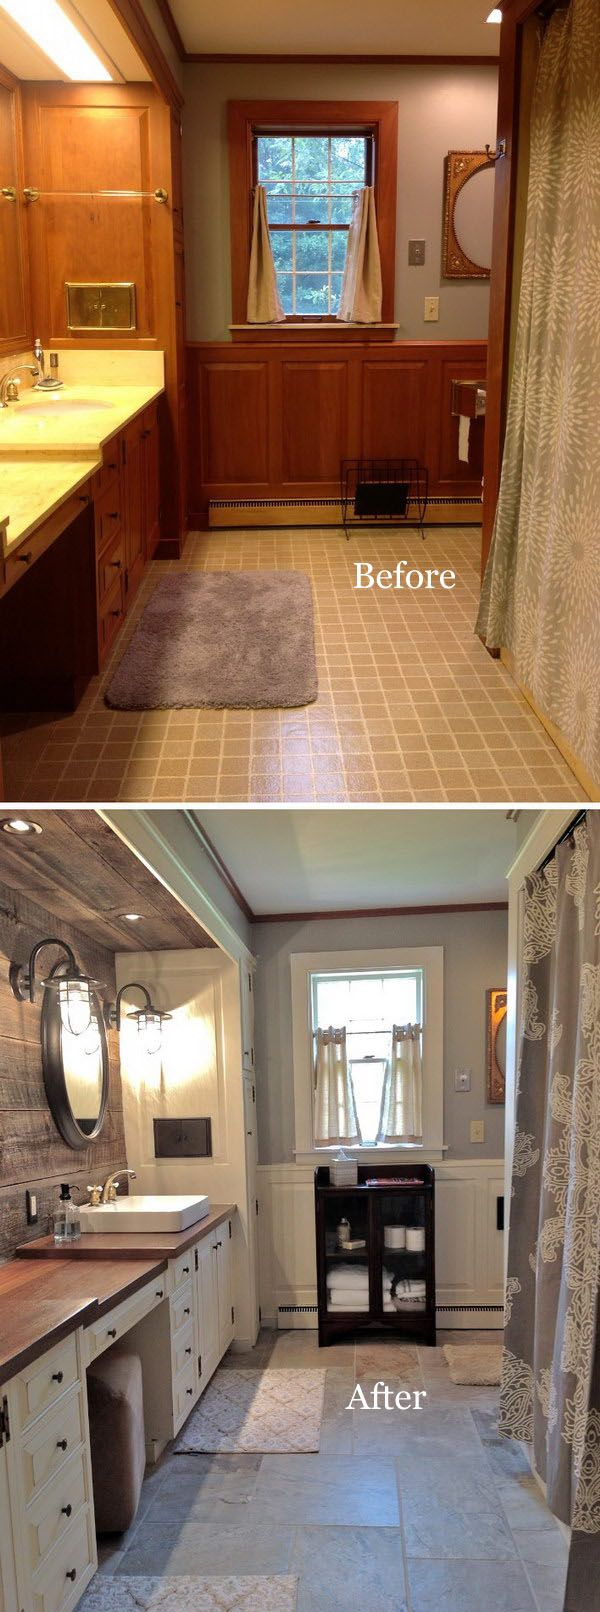 best 25+ bathroom before after ideas on pinterest | modern